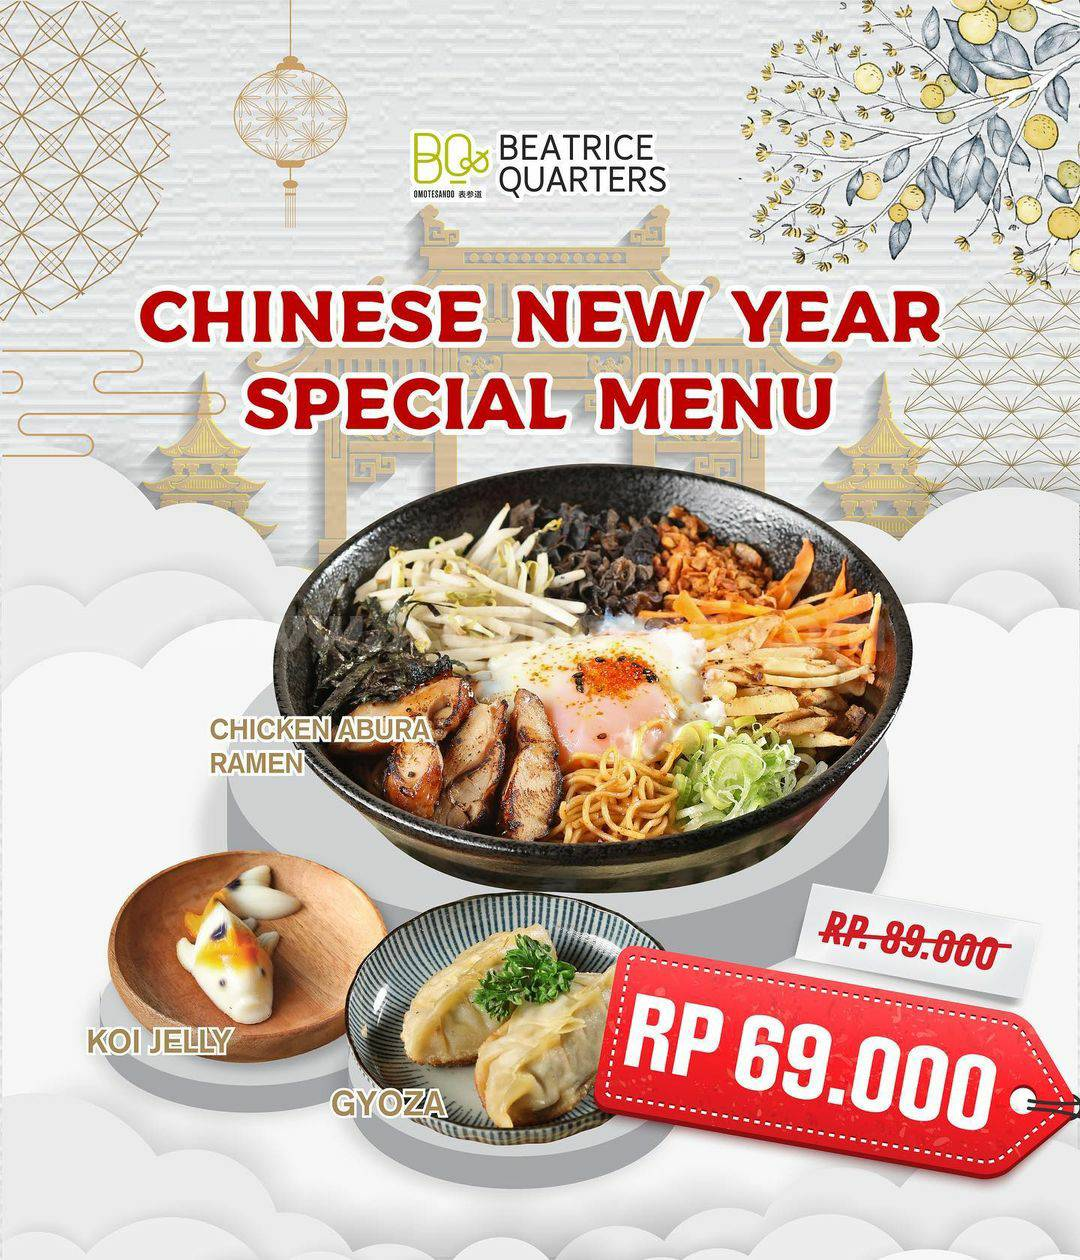 Promo Beatrice Quarters Chinese New Year Special Menu